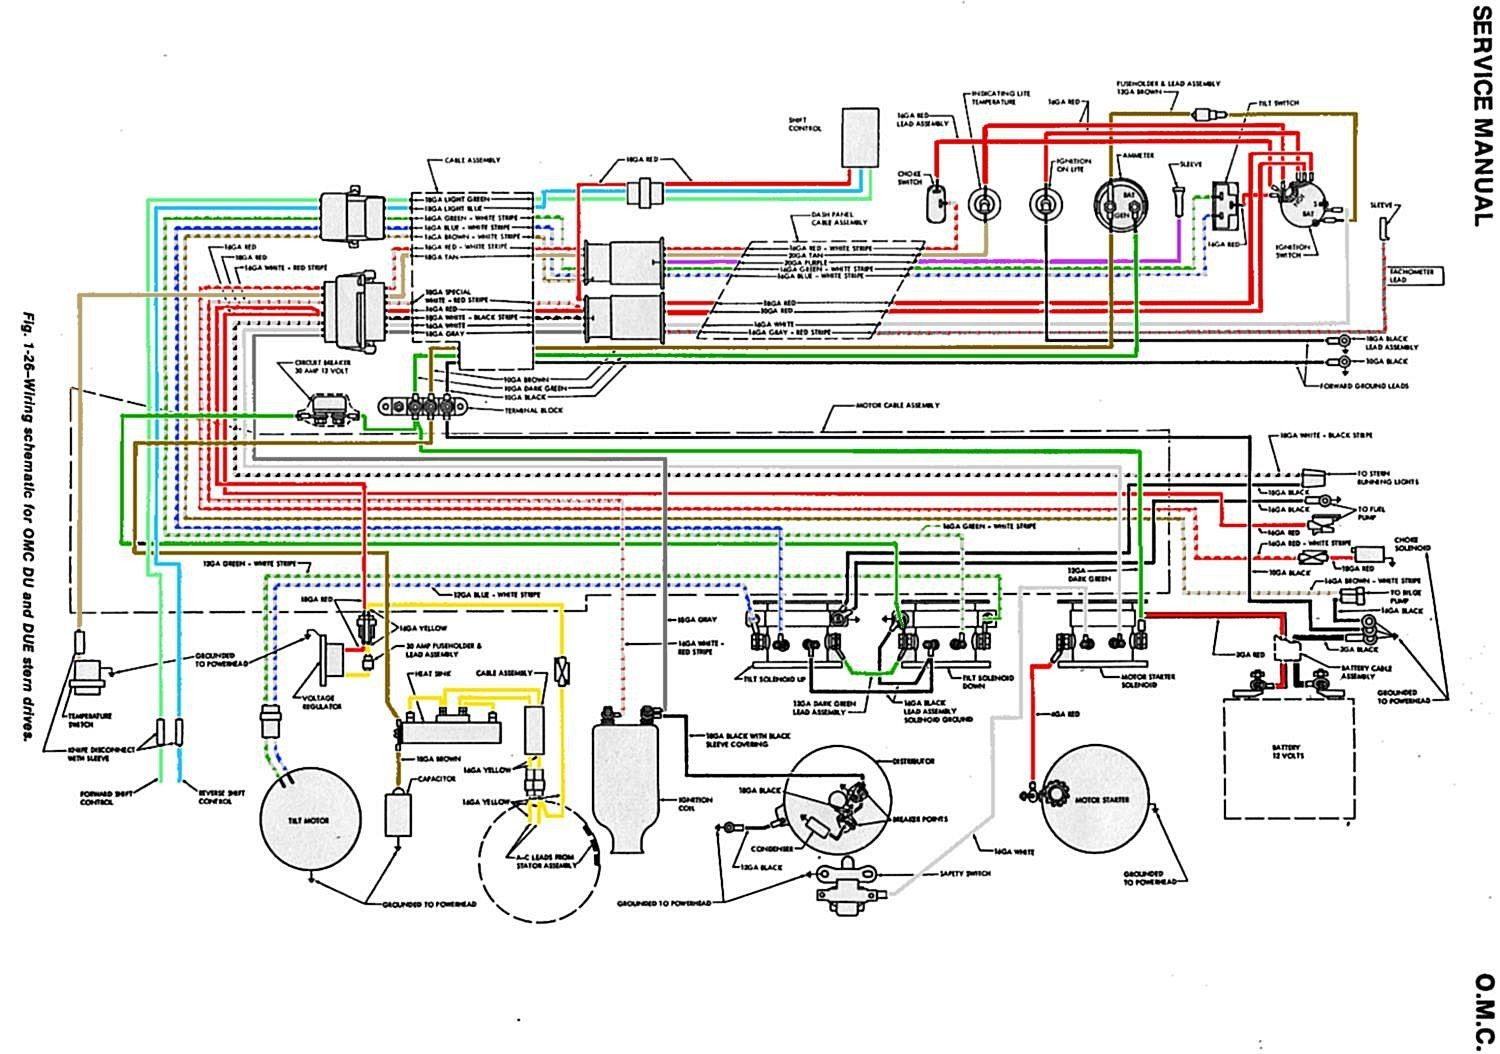 New Evinrude Wiring Diagram Outboards 77 For Cat5e Wiring Diagram A B with Evinrude Wiring Diagram Outboards